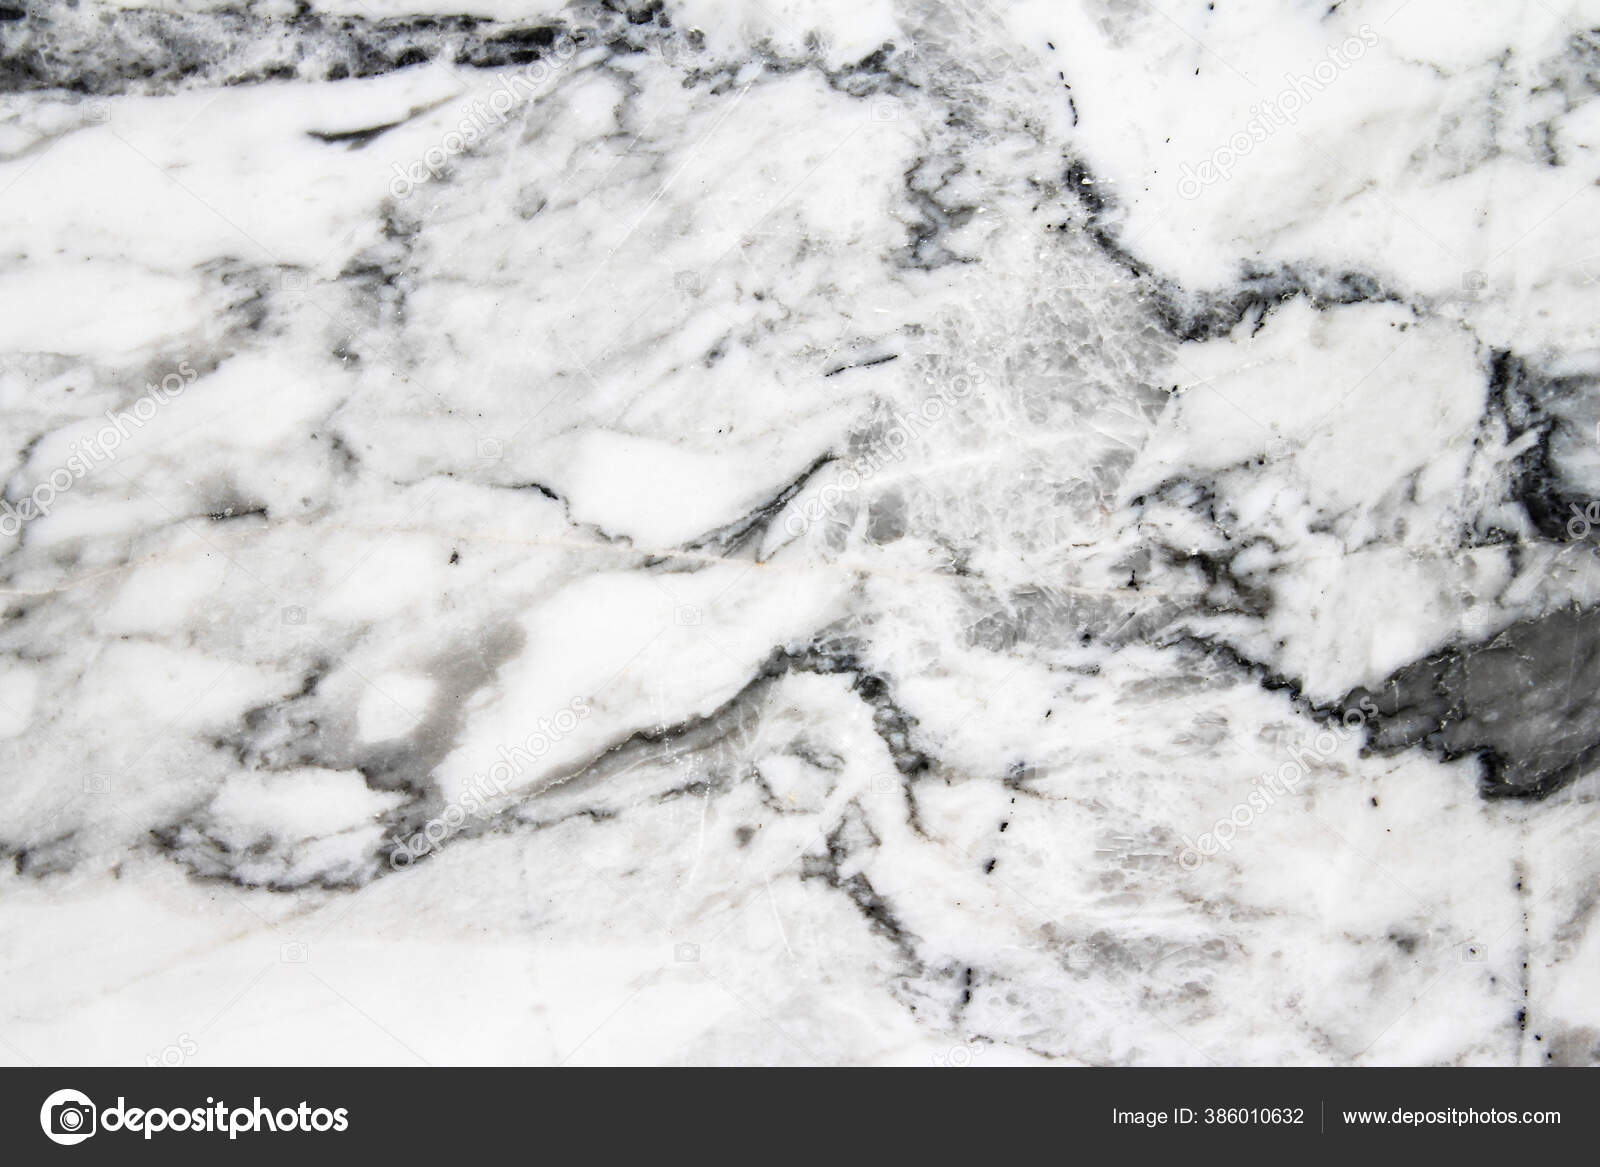 Grey Marble Stone Wall Floor Texture Background Stock Photo C Tendo23 386010632